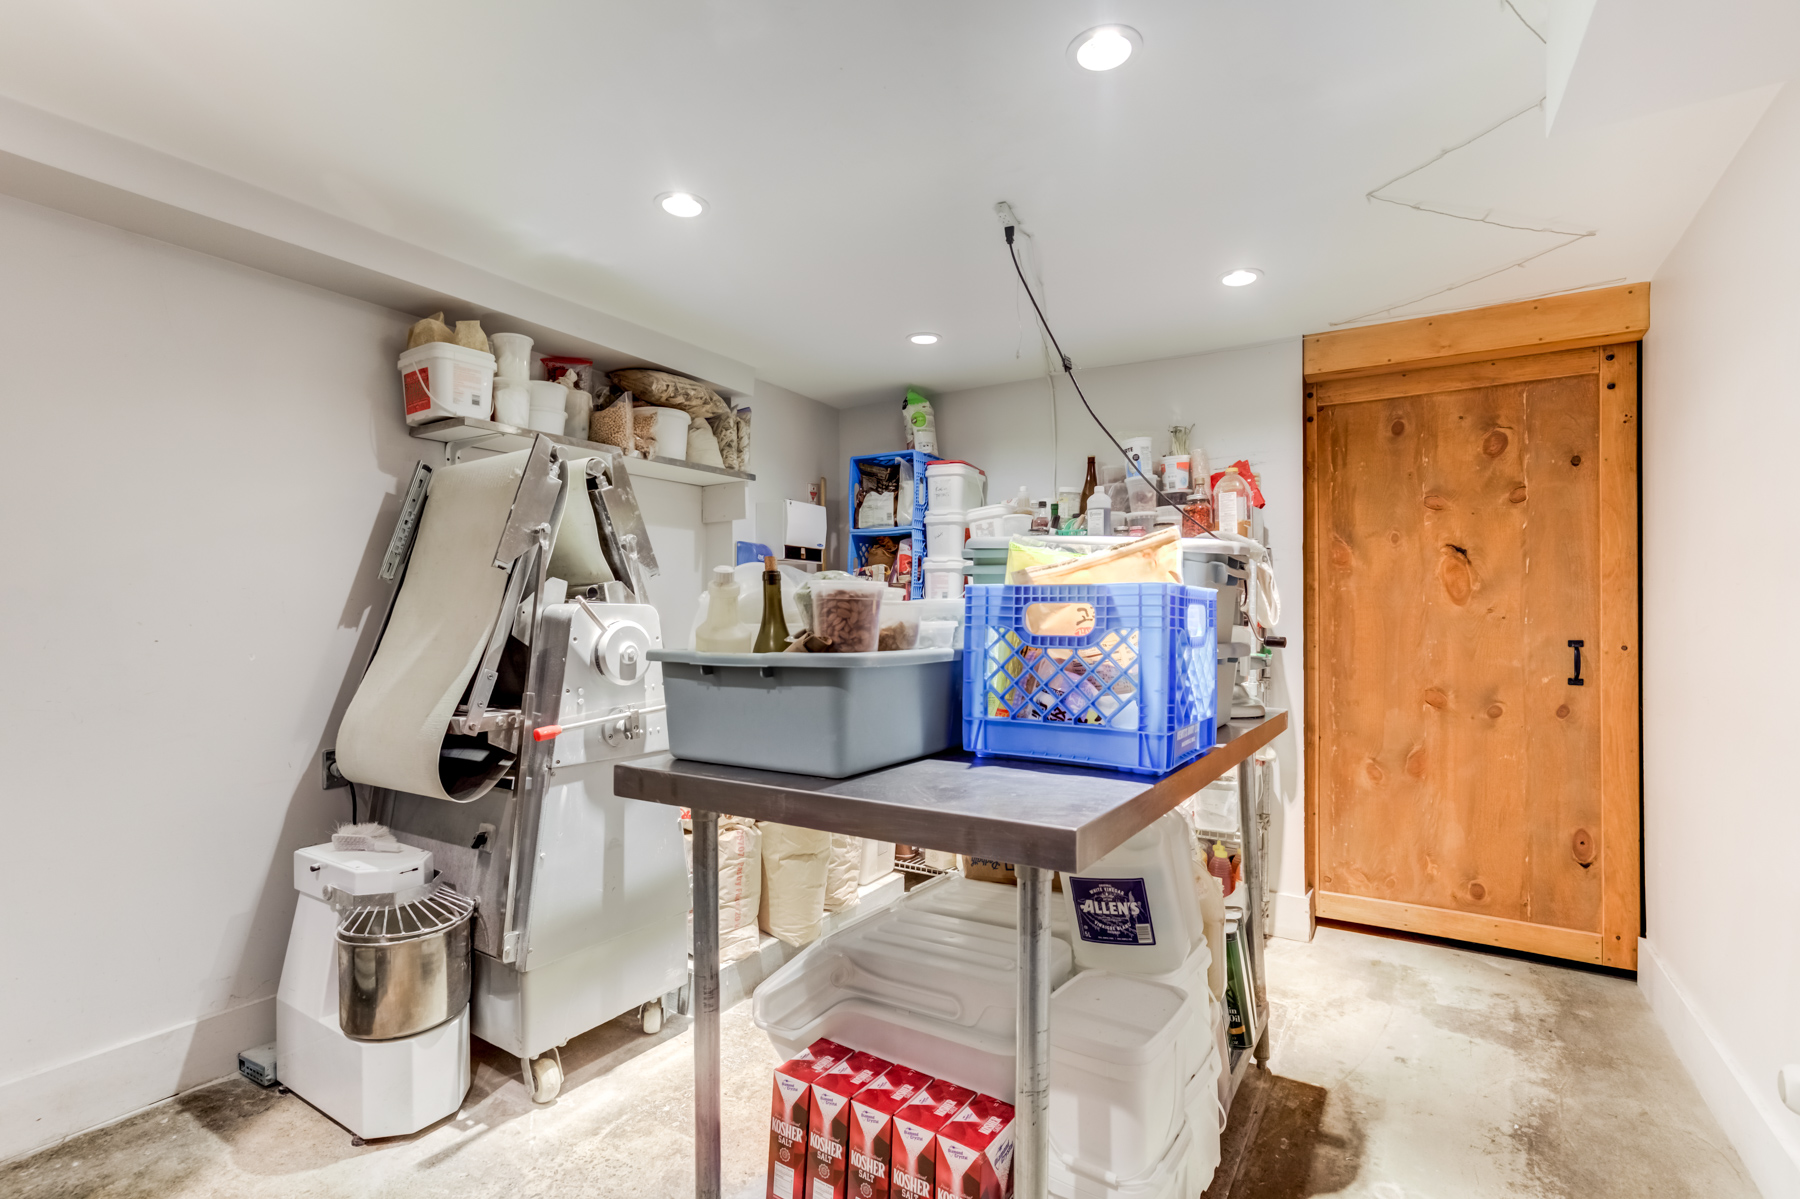 Basement storage room with food items.